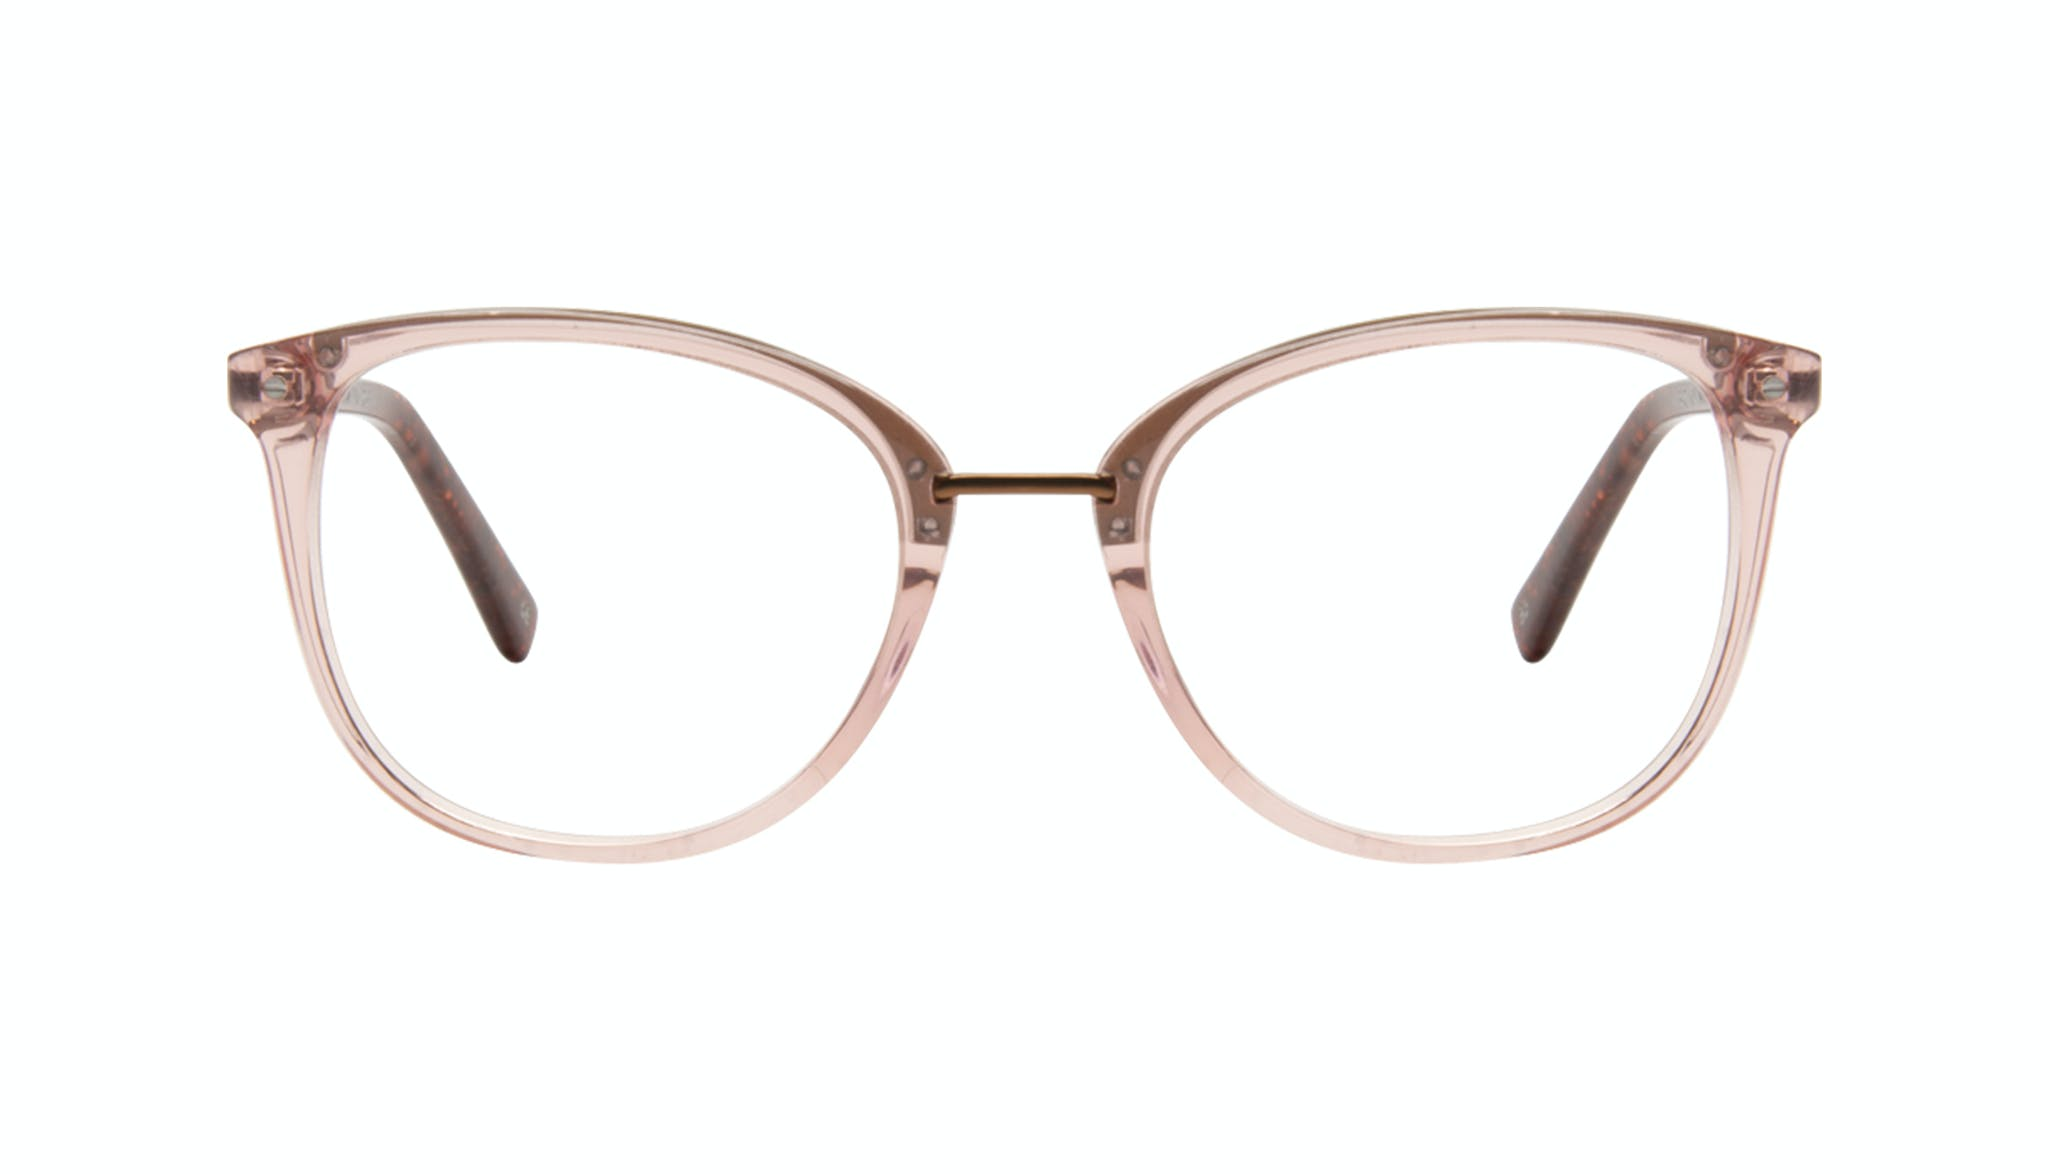 Affordable Fashion Glasses Square Round Eyeglasses Women Bella Rose Front